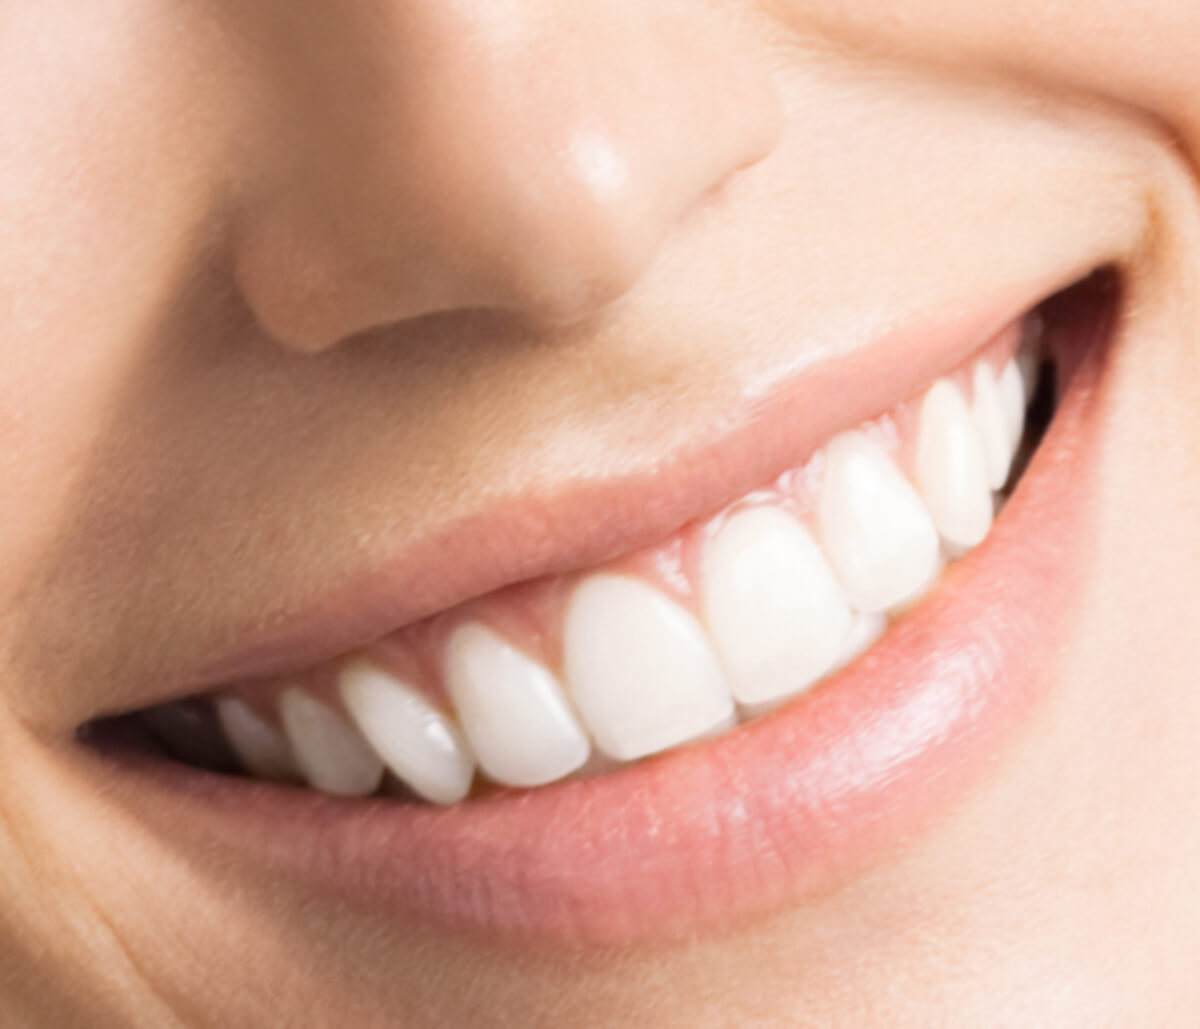 Where Can I Get Healthy Teeth Whitening in Milton, ON Area?